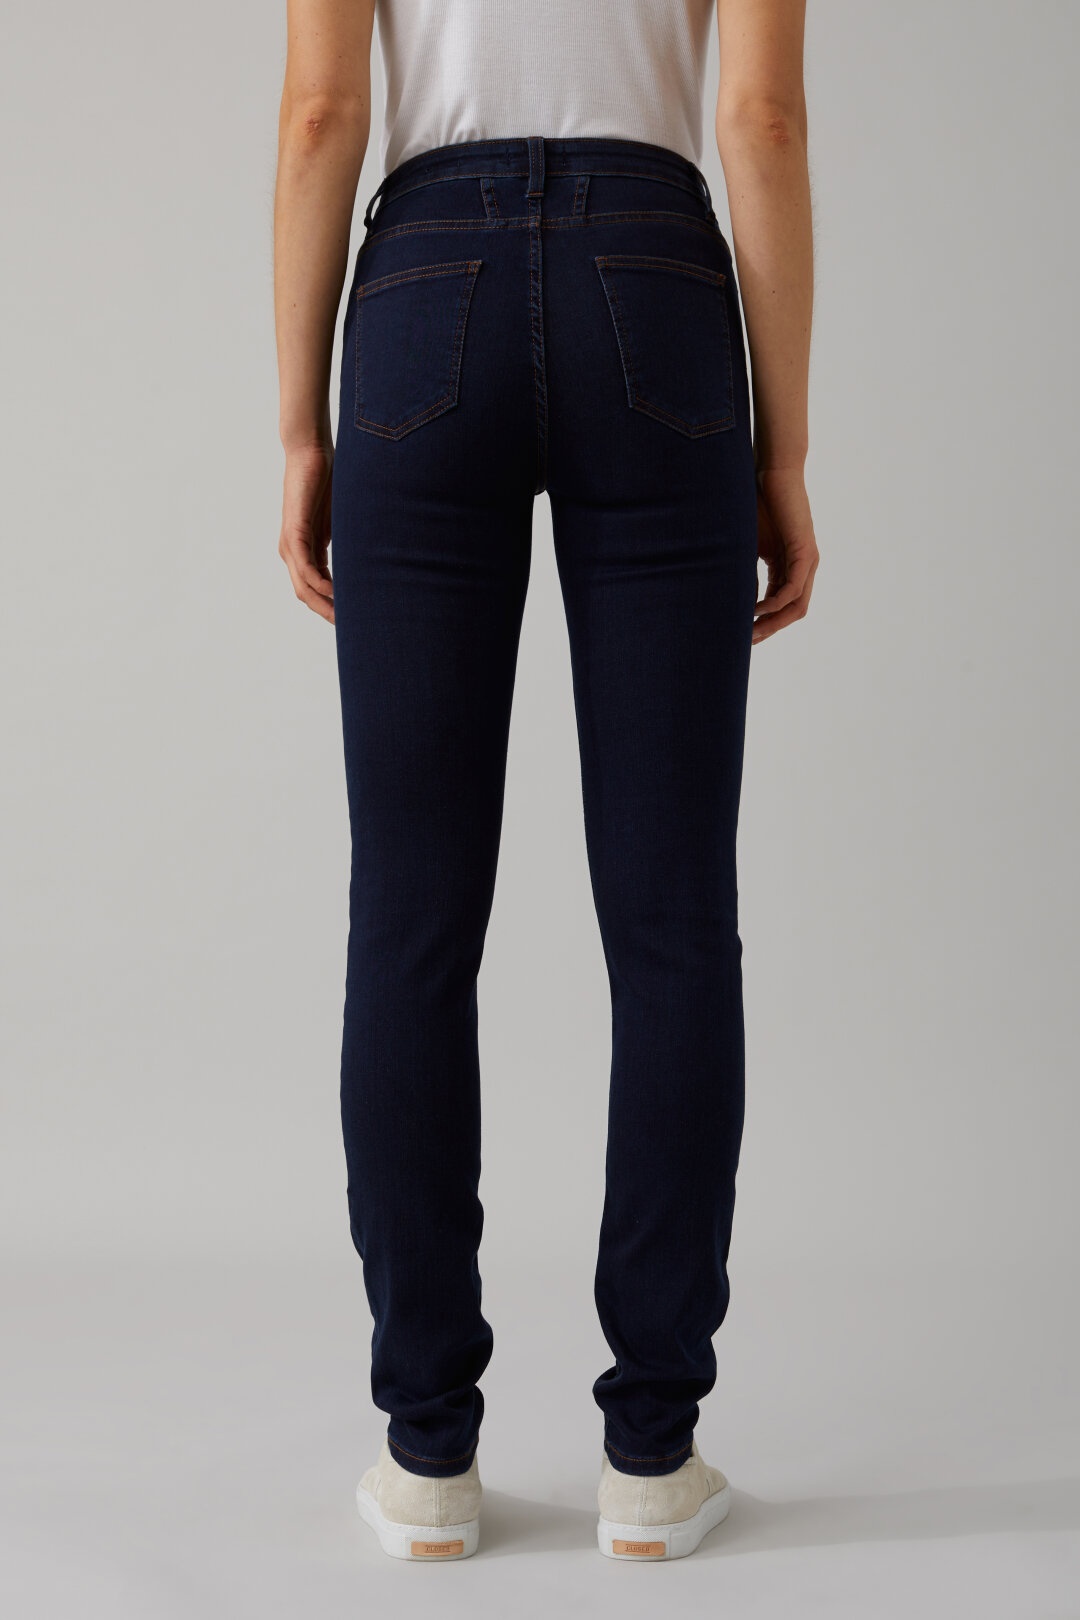 Lizzy Blue Power Stretch Denim Closed fyN6o3